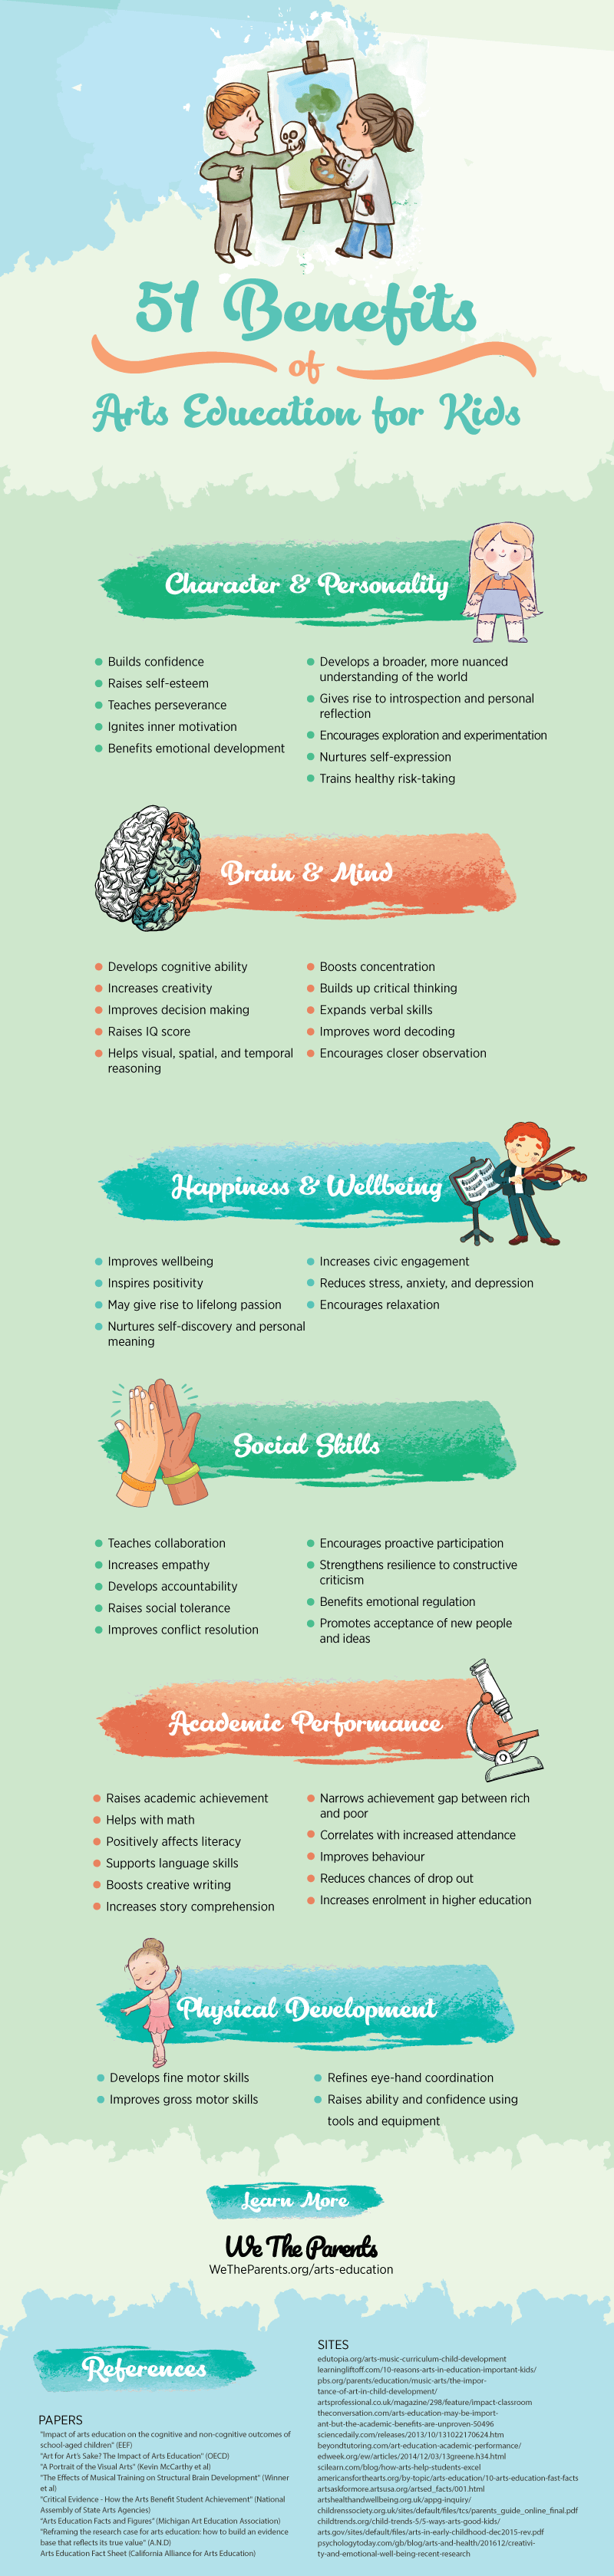 51-Benefits-of-Arts-Education-for-Kids-INFOGRAPHIC.png